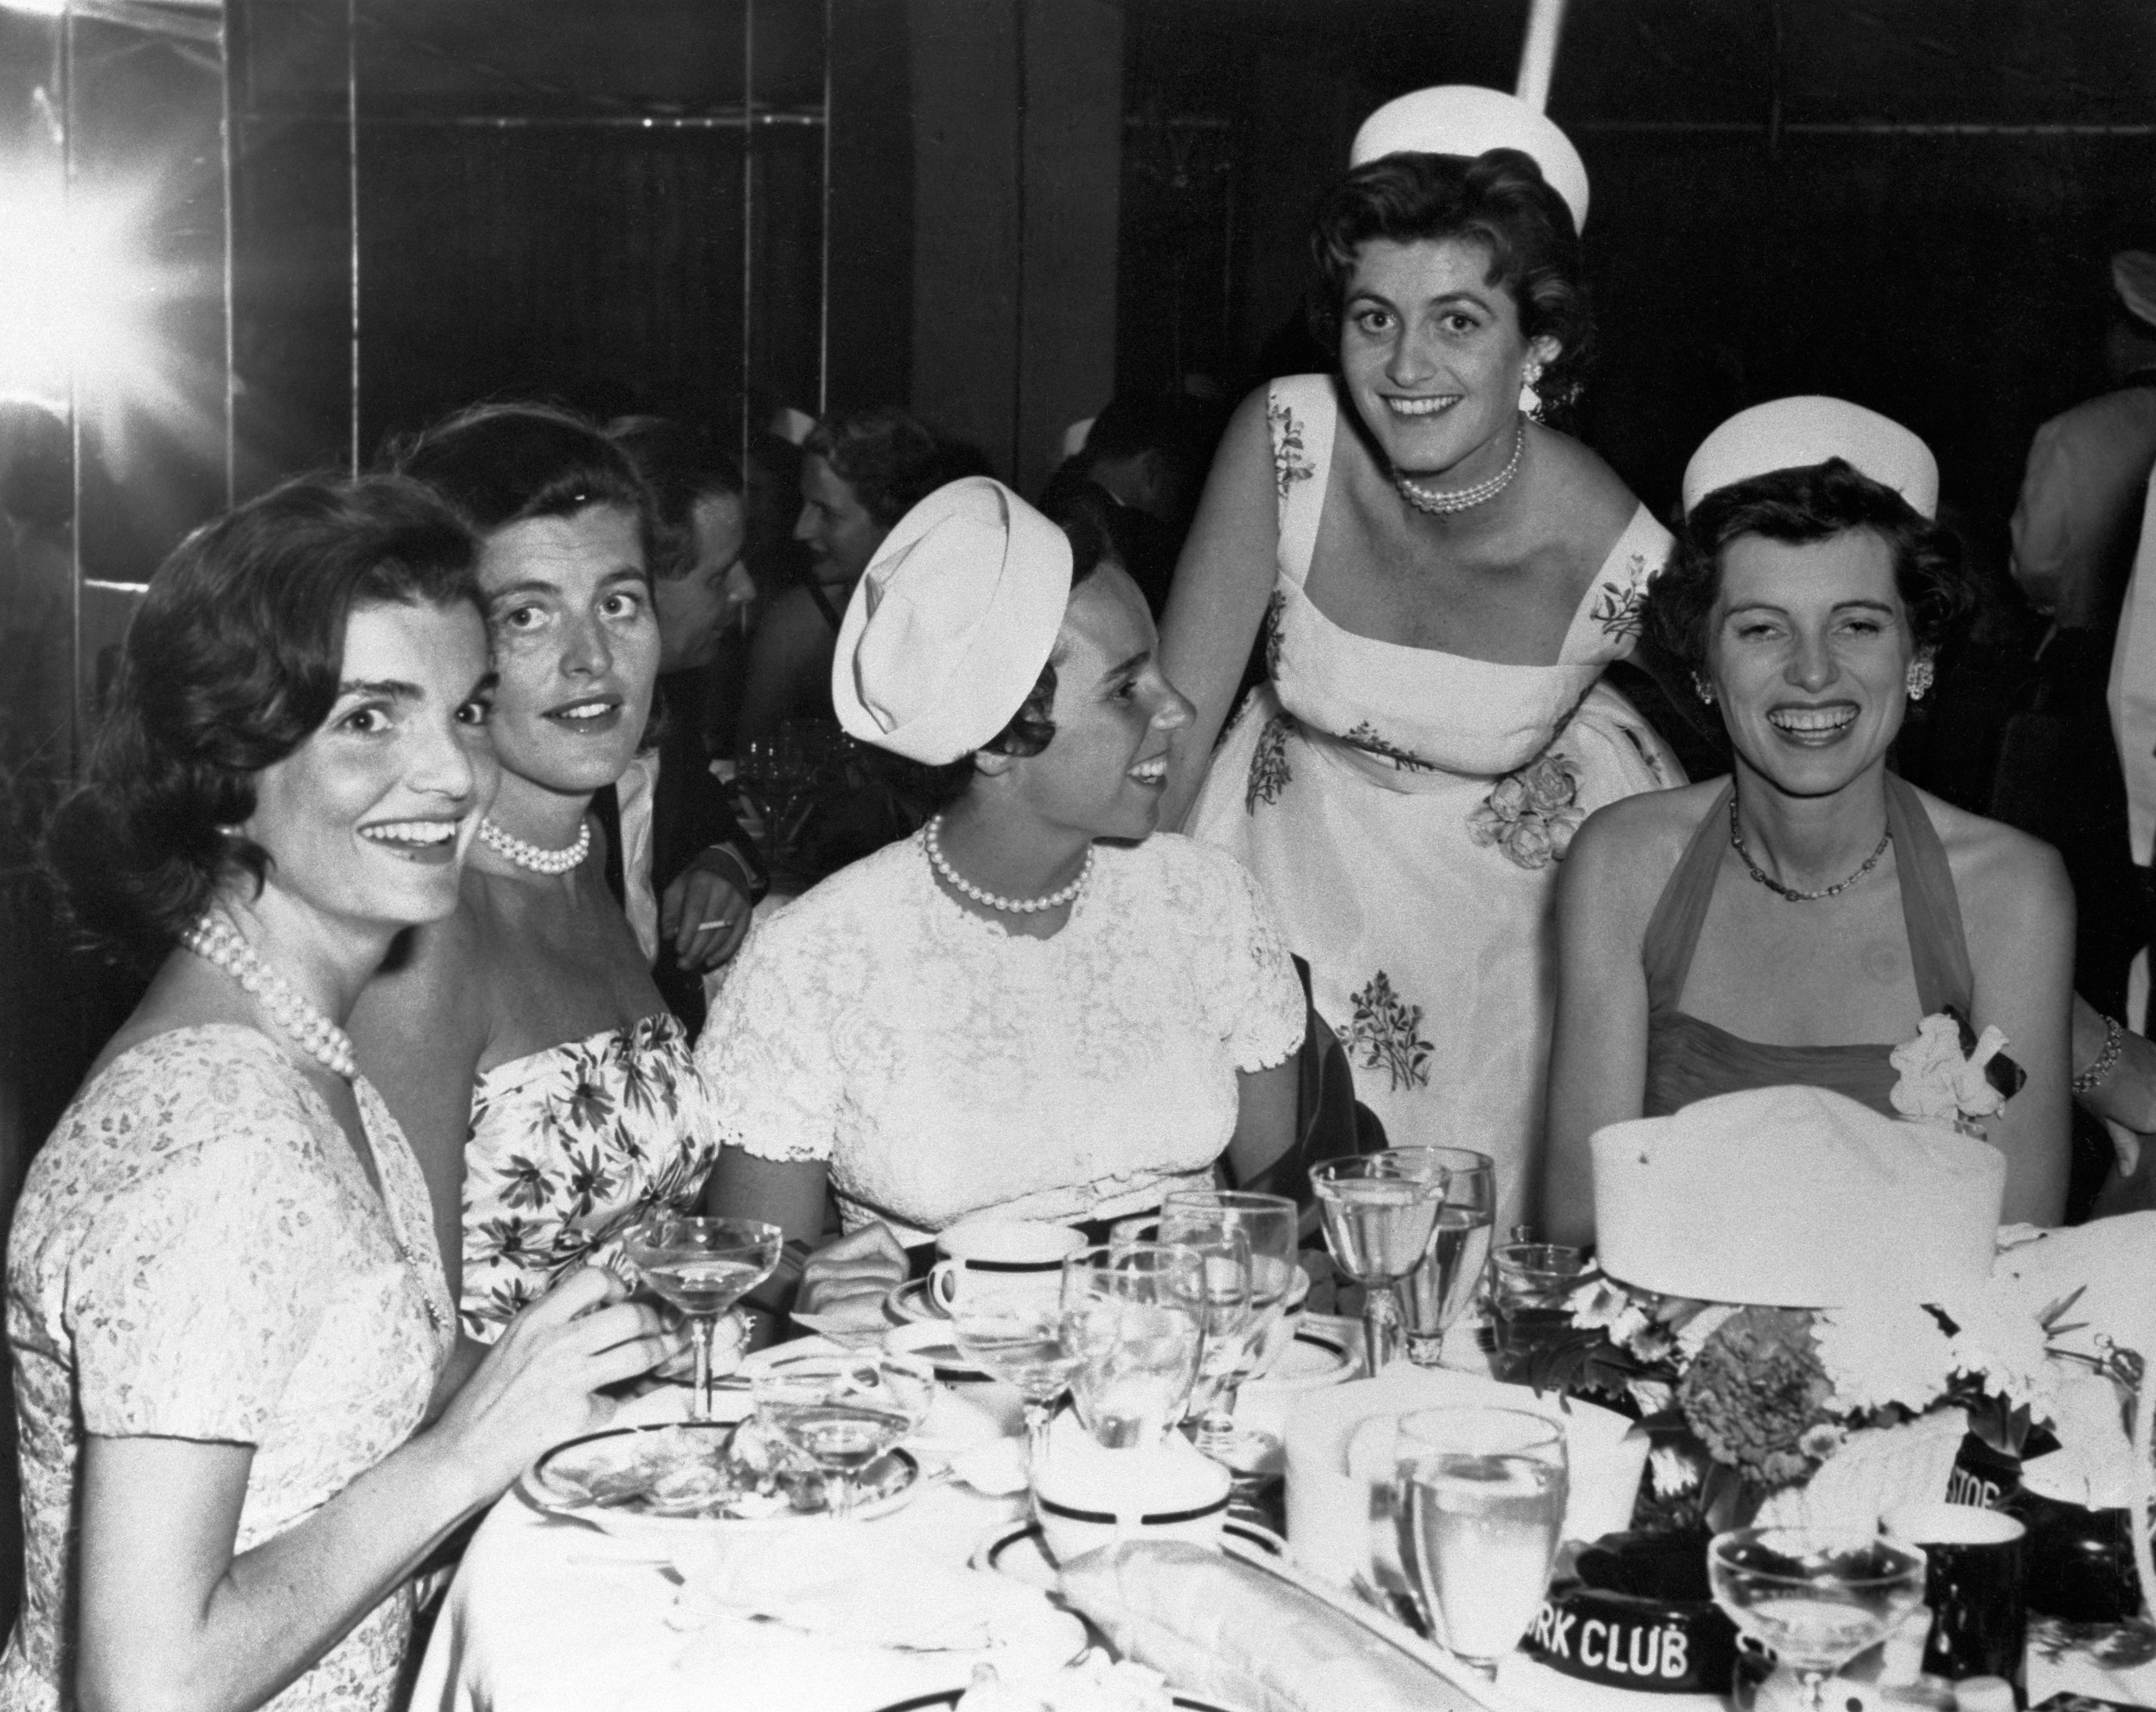 Five Kennedy women—Jackie, Patricia Lawford, Ethel Kennedy, Eunice Shriver, and Jean Kennedy—attend a party.